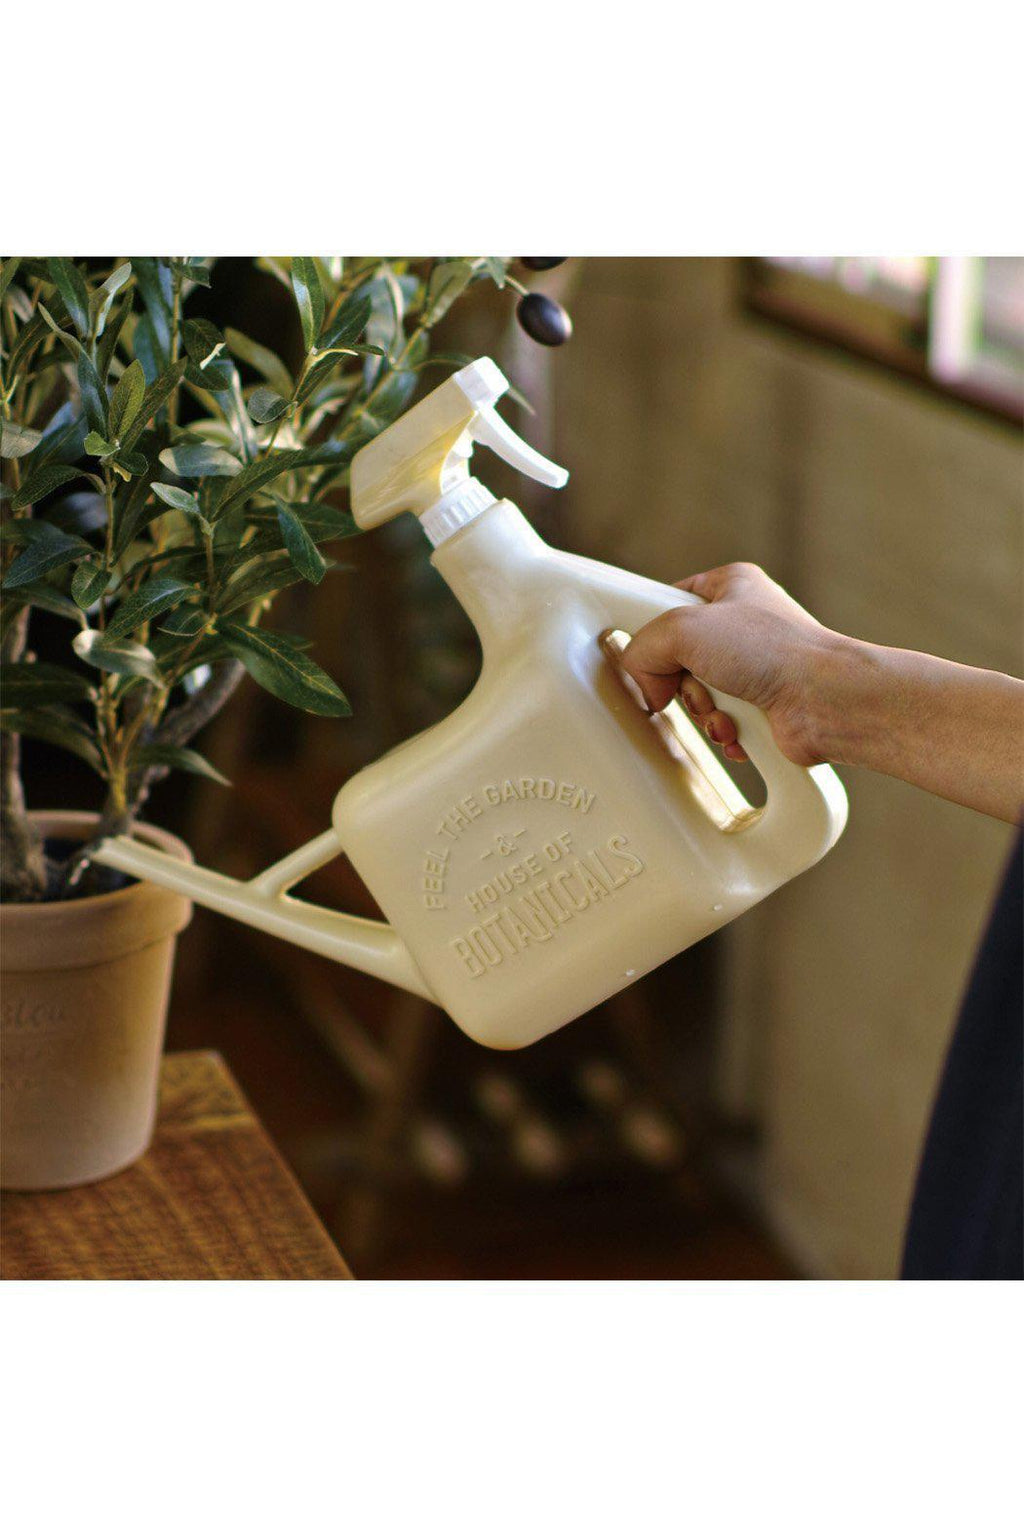 EcoVibe Style - Spray Sprinkler Watering Can & Mister